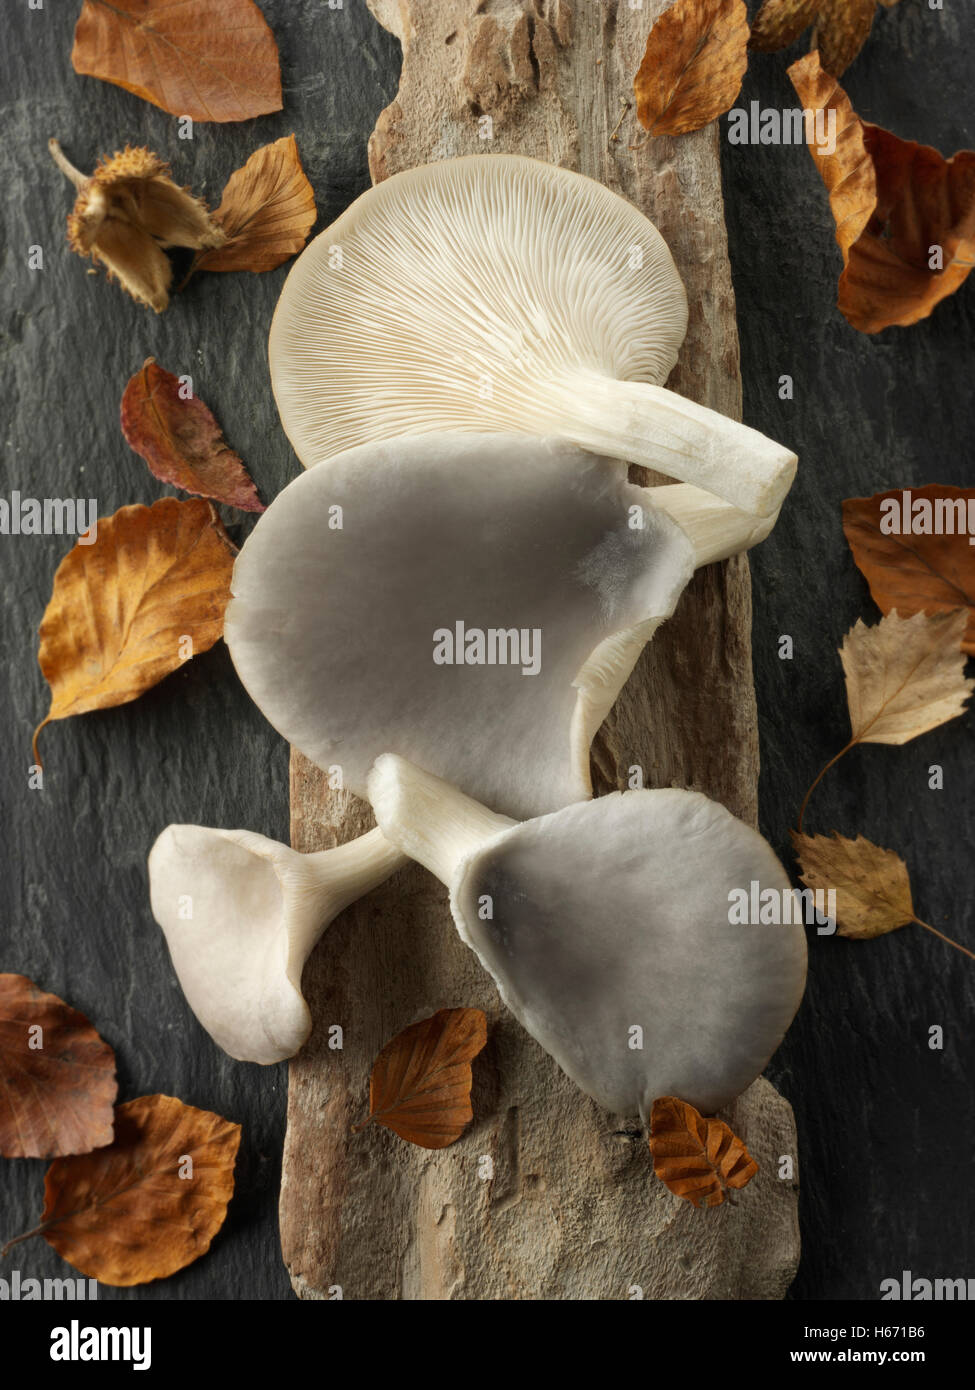 Fresh picked raw grey oyster mushrooms, Pleurotus ostreatus, uncooked - Stock Image